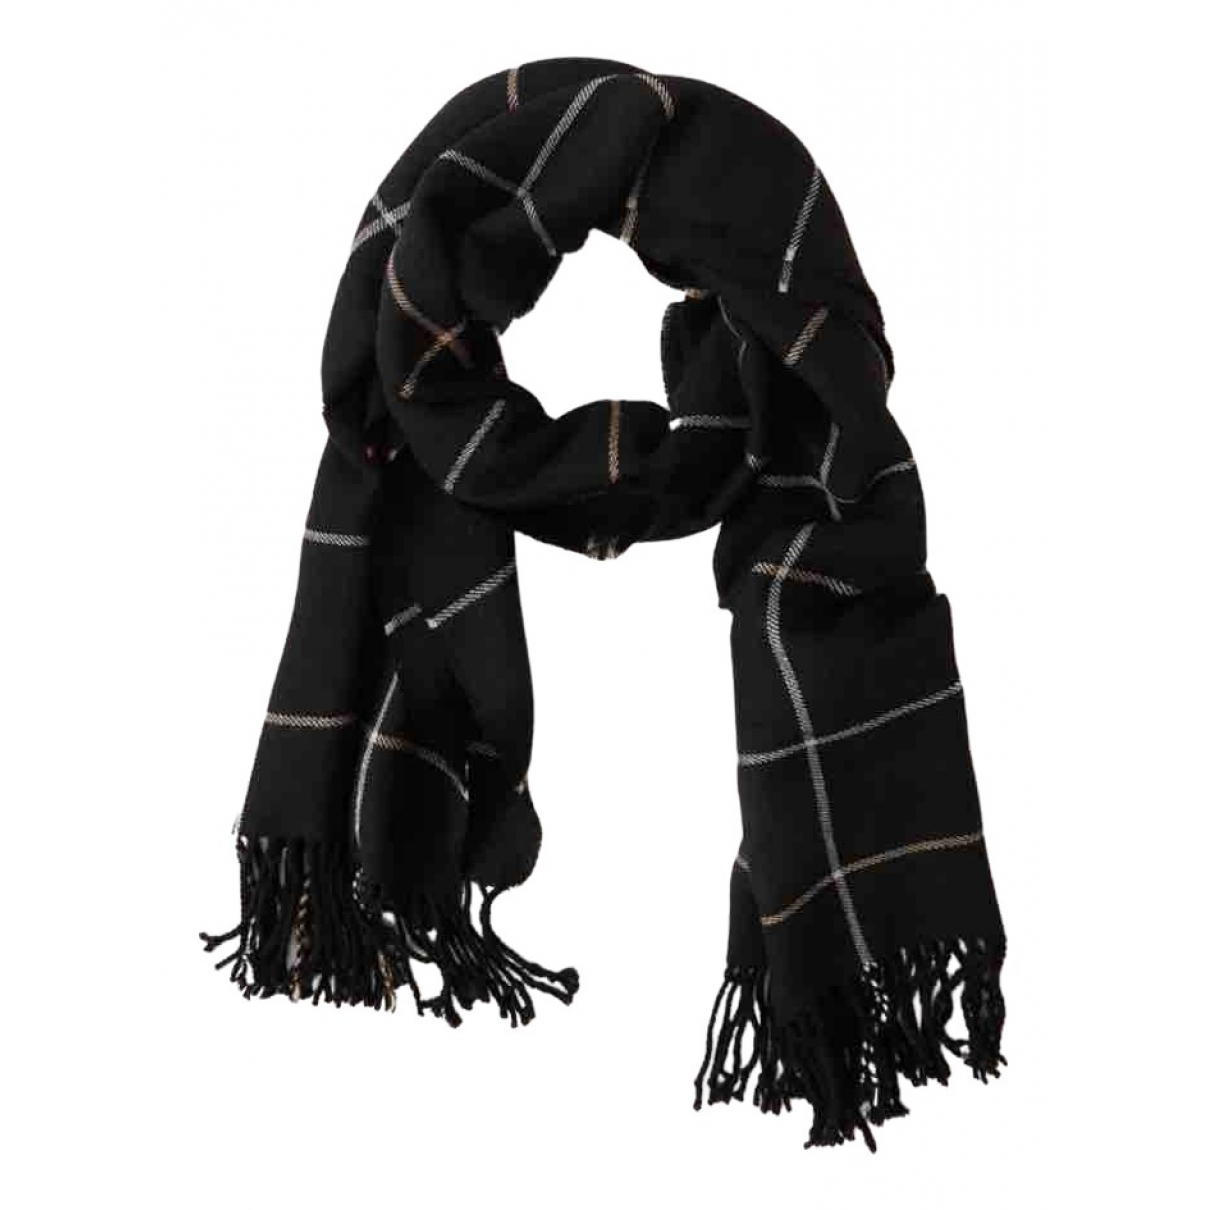 Abercrombie & Fitch N Black scarf for Women N